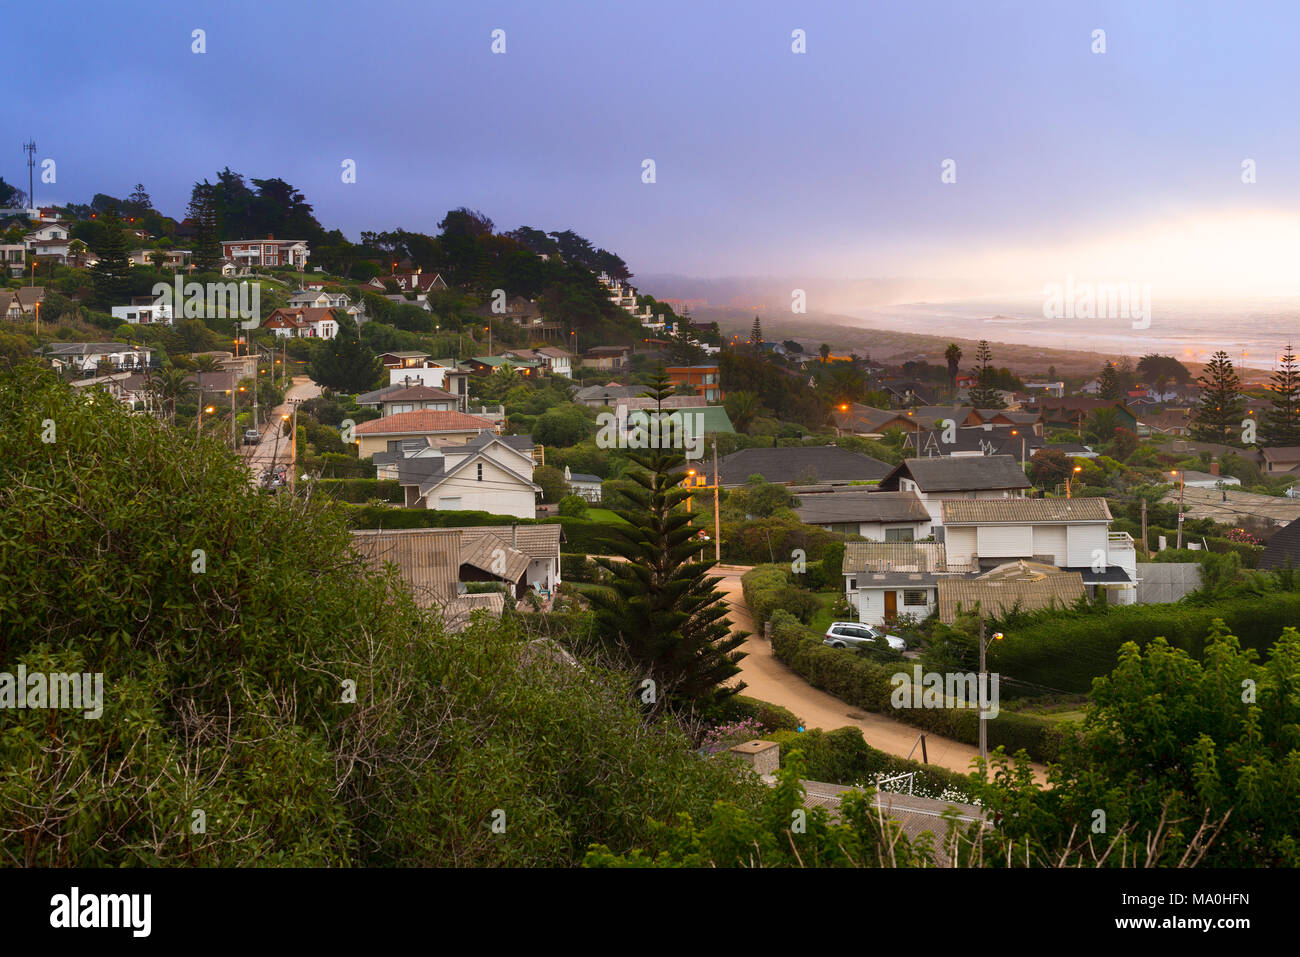 Panoramic view of the wealthy beach town of Santo Domingo, V Region, Chile - Stock Image